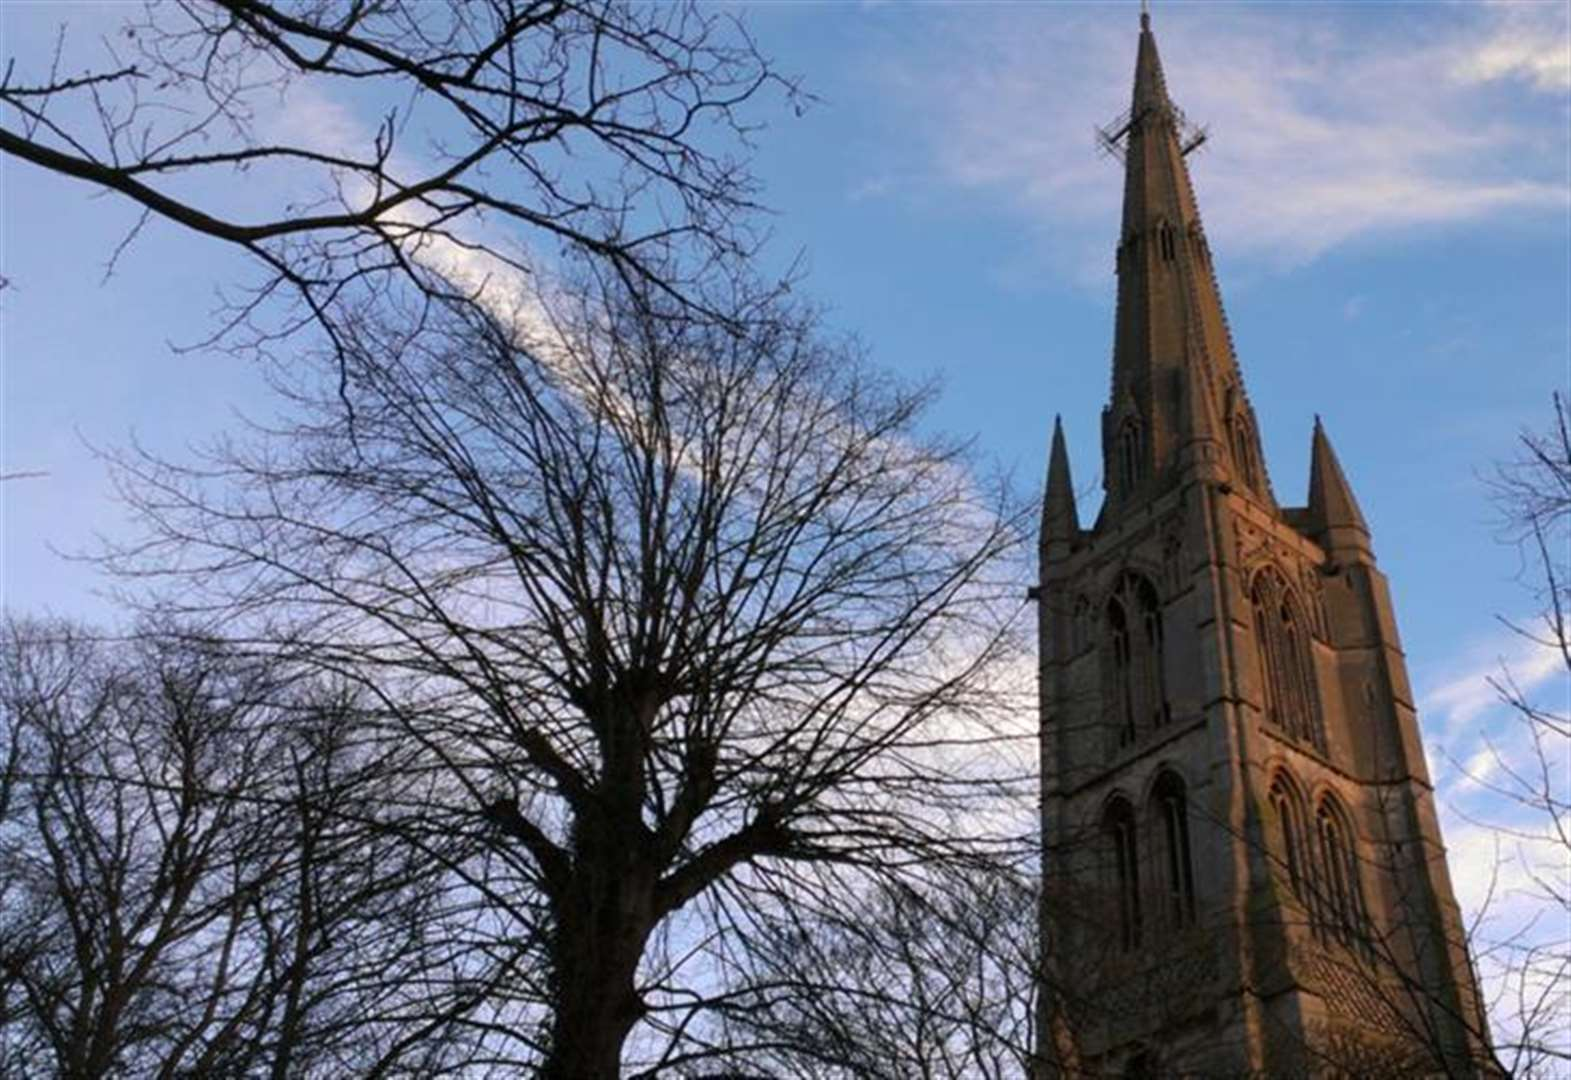 St Wulfram's Church to apply for premises licence